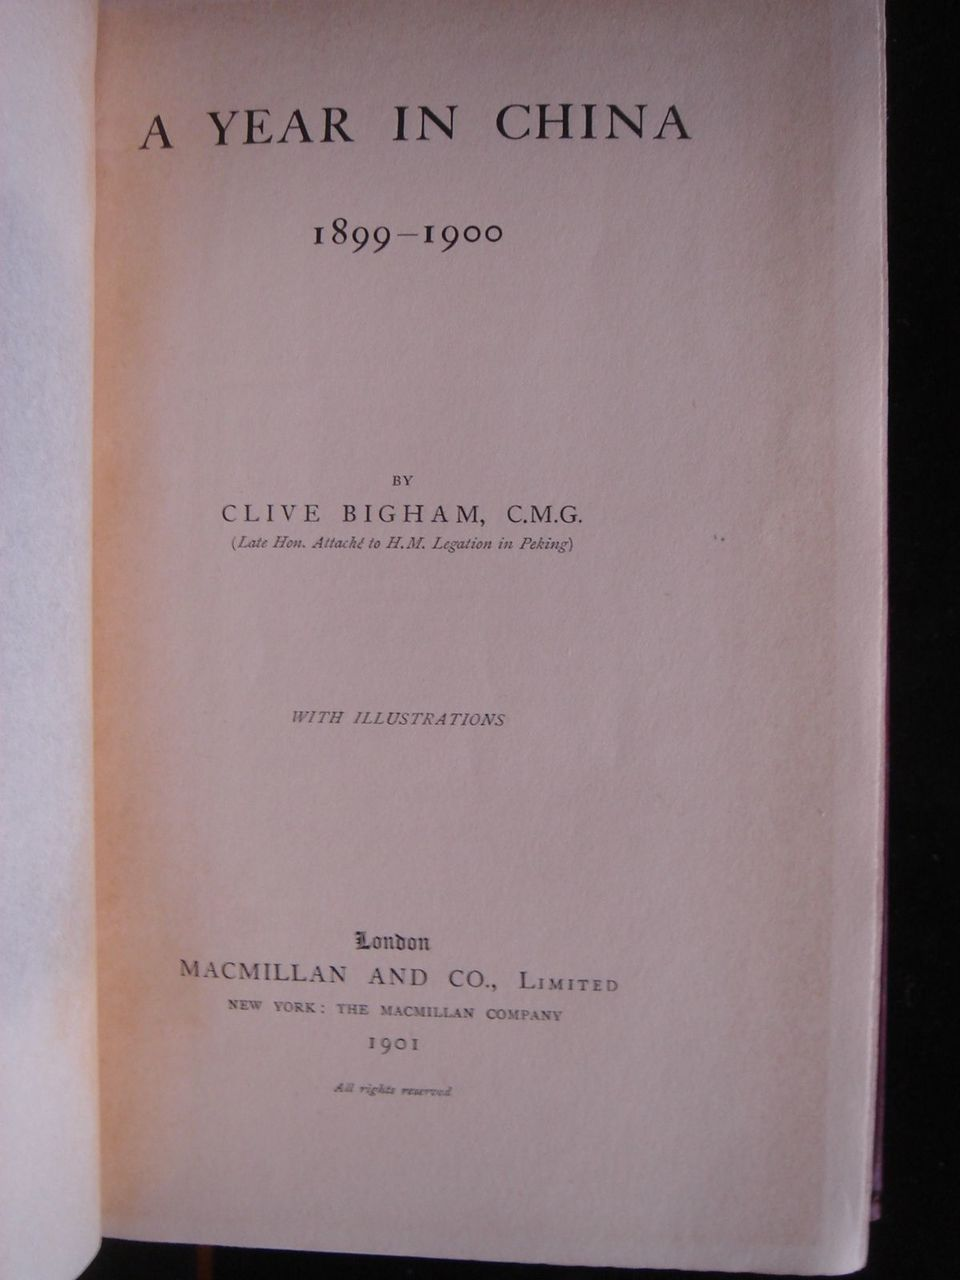 A YEAR IN CHINA 1899-1900, by Clive Bigham - 1901